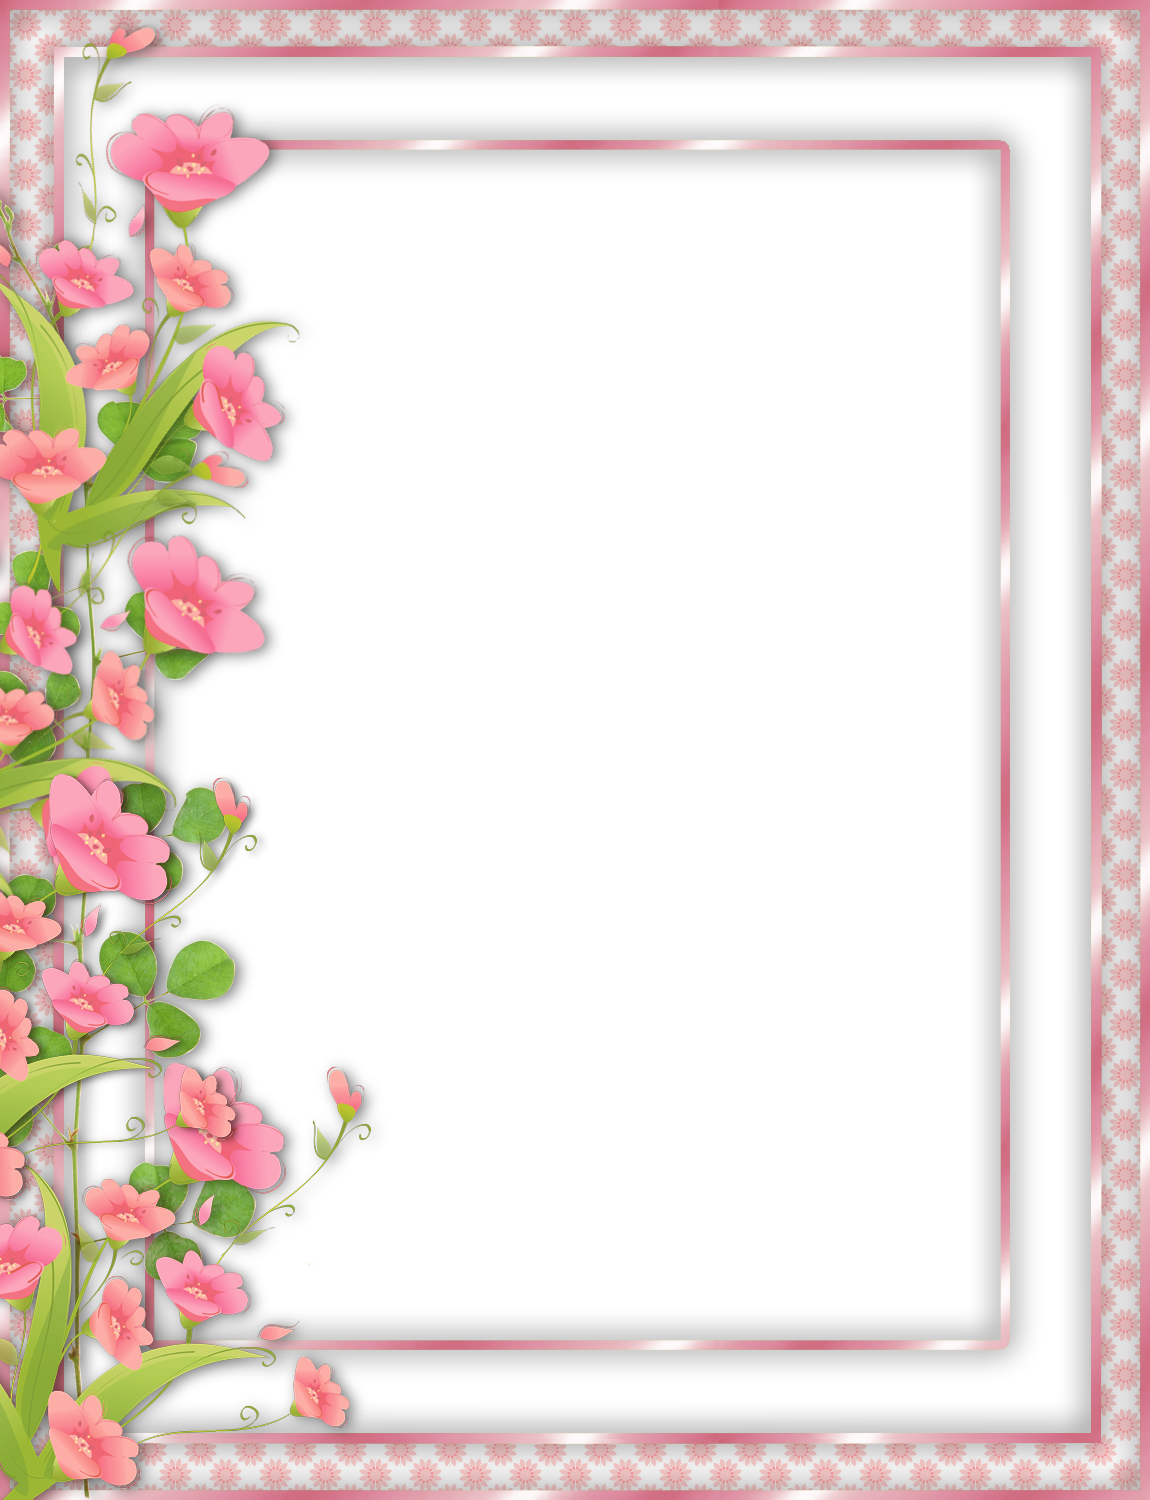 Png photo frame. Pink transparent with flowers